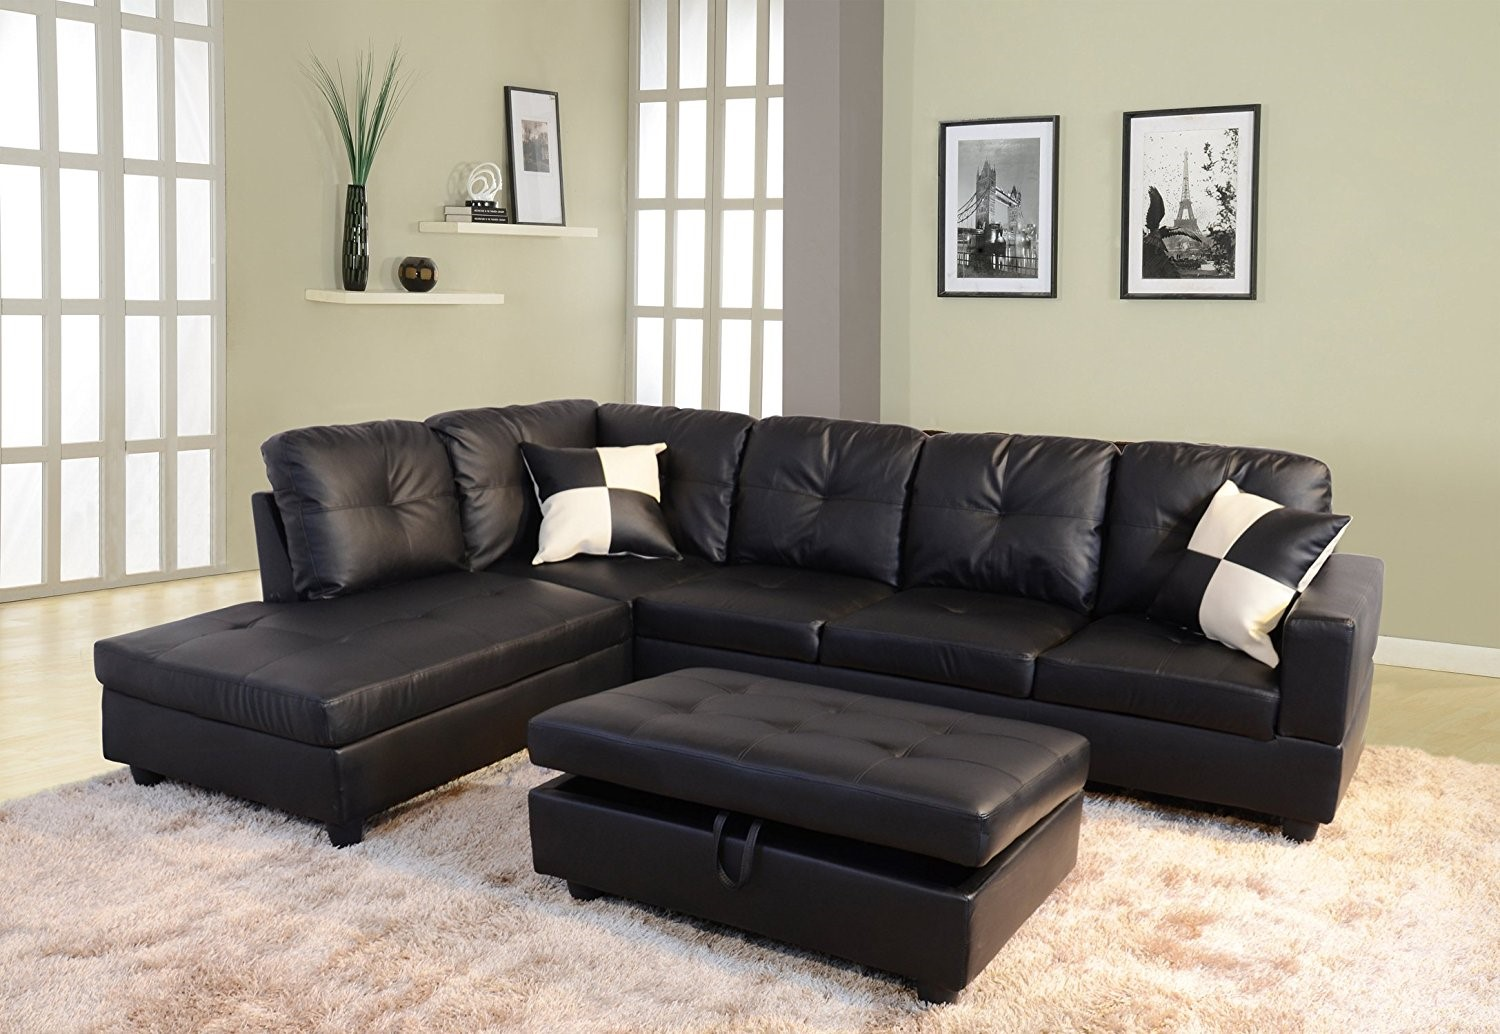 Astonishing Best Buy Faux Leather Sofa Review Free Shipping Theyellowbook Wood Chair Design Ideas Theyellowbookinfo